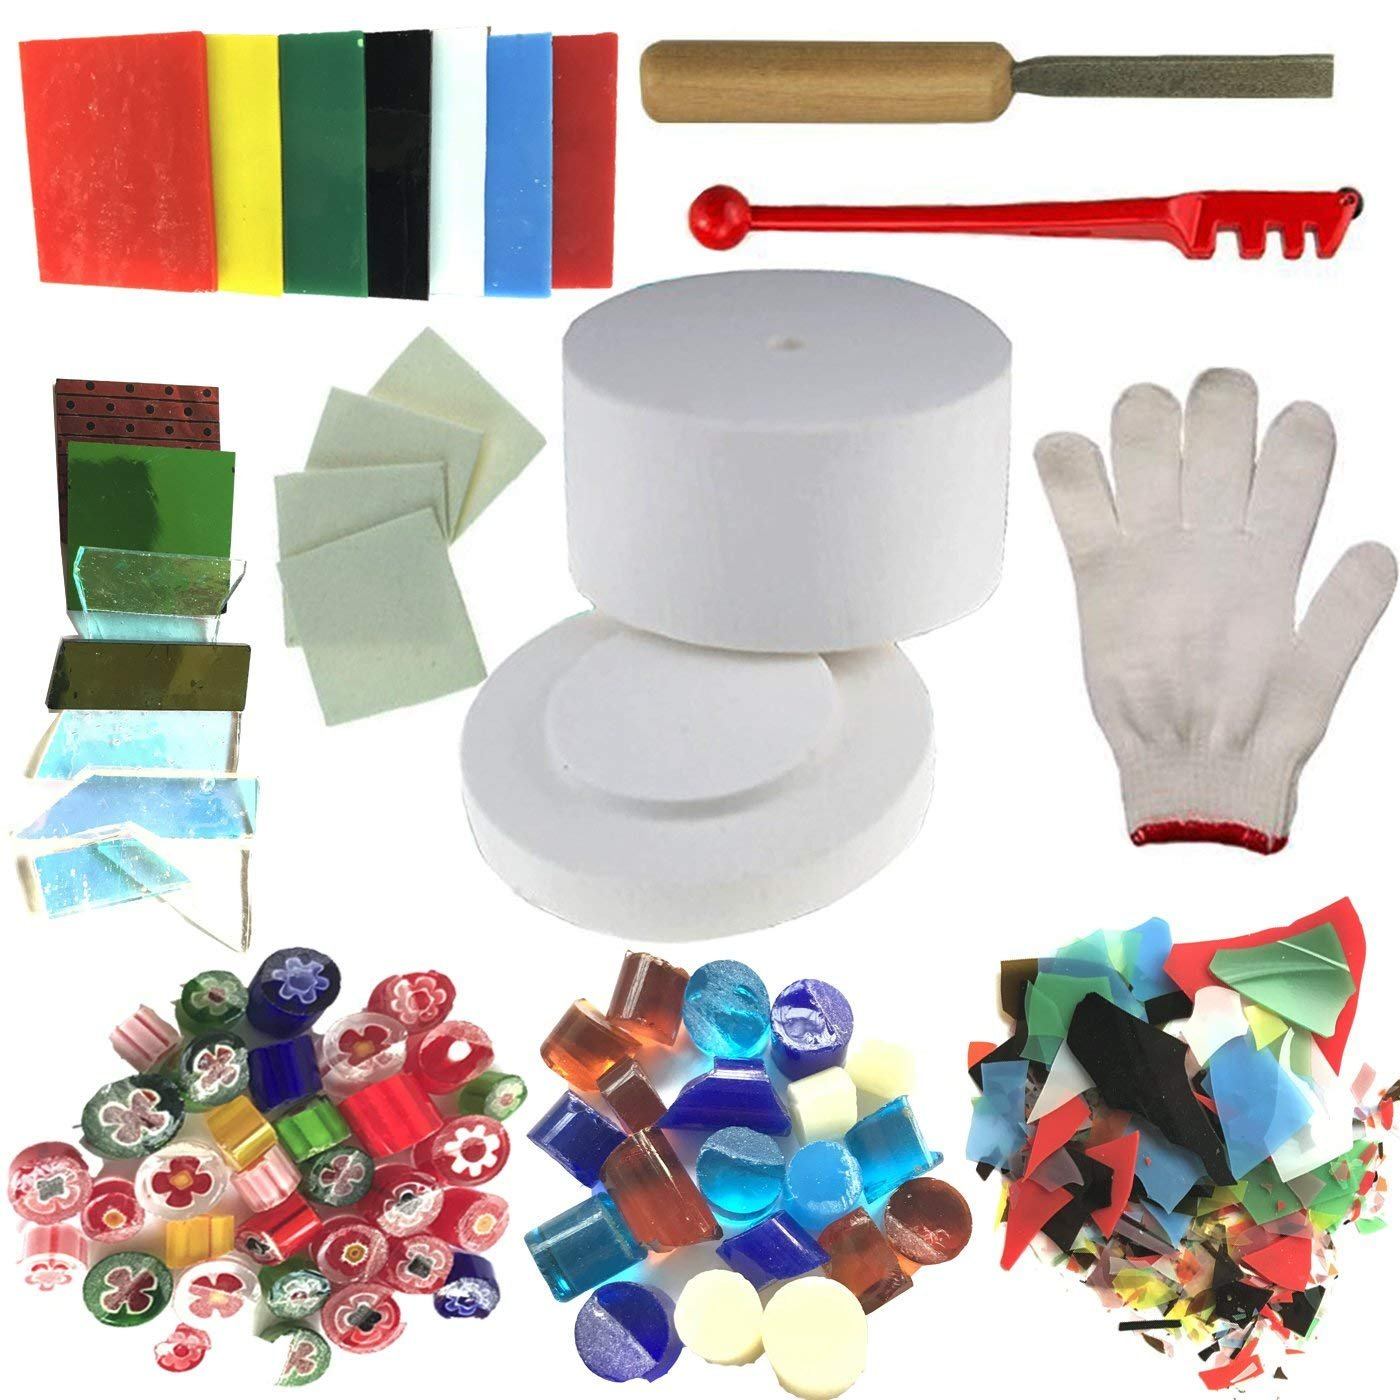 Microwave Kiln and DIY Fusing Glass Jewelry Set - Professional Simple Making DIY Jewelry Glass Fusing Tools Set (Have Instructions)